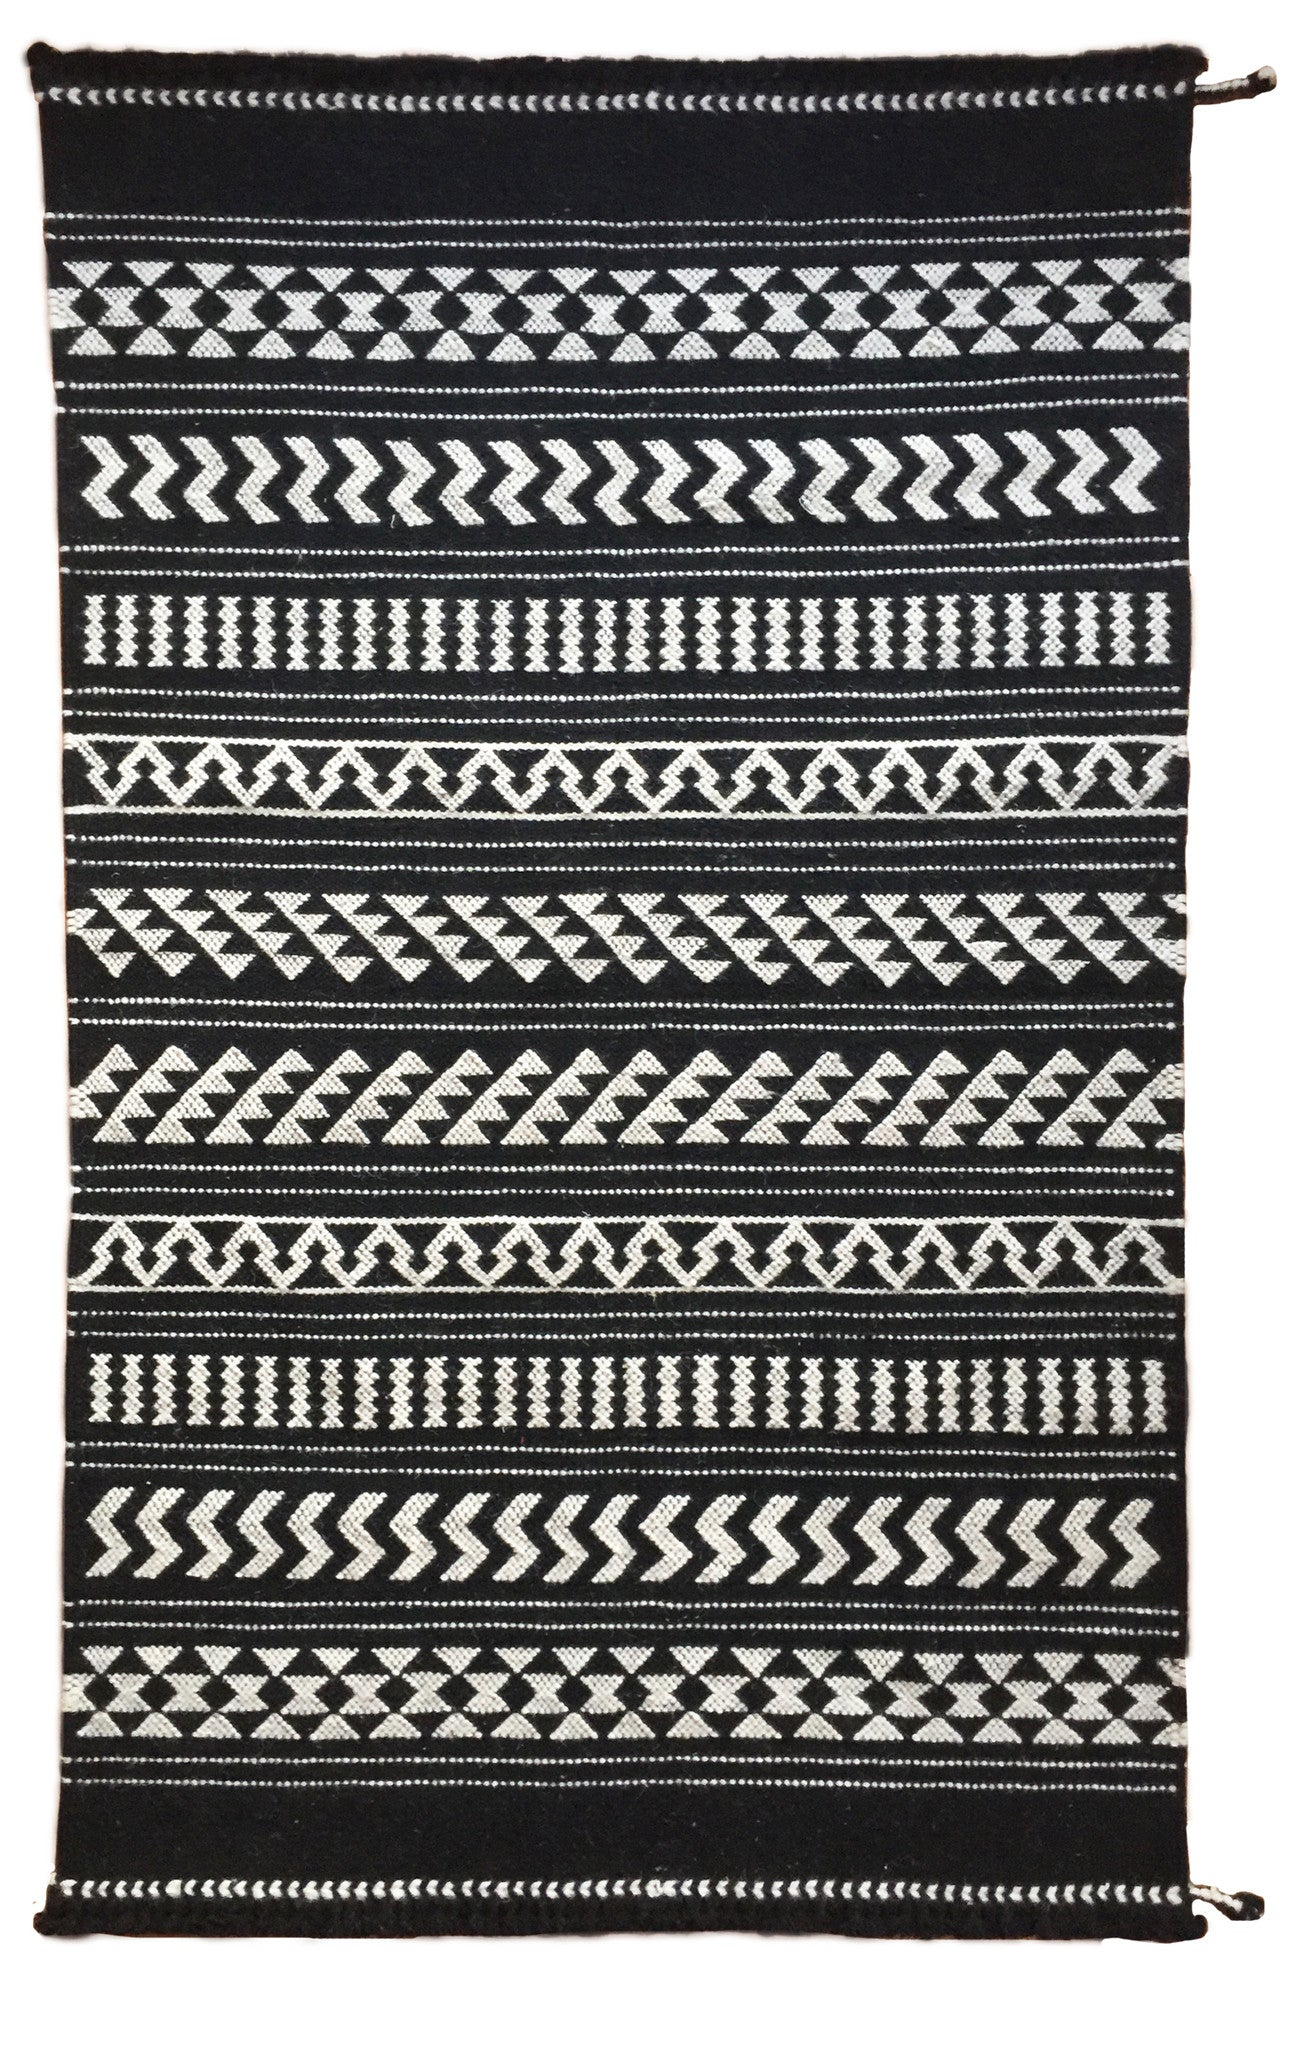 SUNDAY/MONDAY Handwoven Indian 100% Wool hand knotted Rug Textile, Kuran, made in Kutch, Gujarat Black and White, featuring graphic traditional indigenous Indian motifs